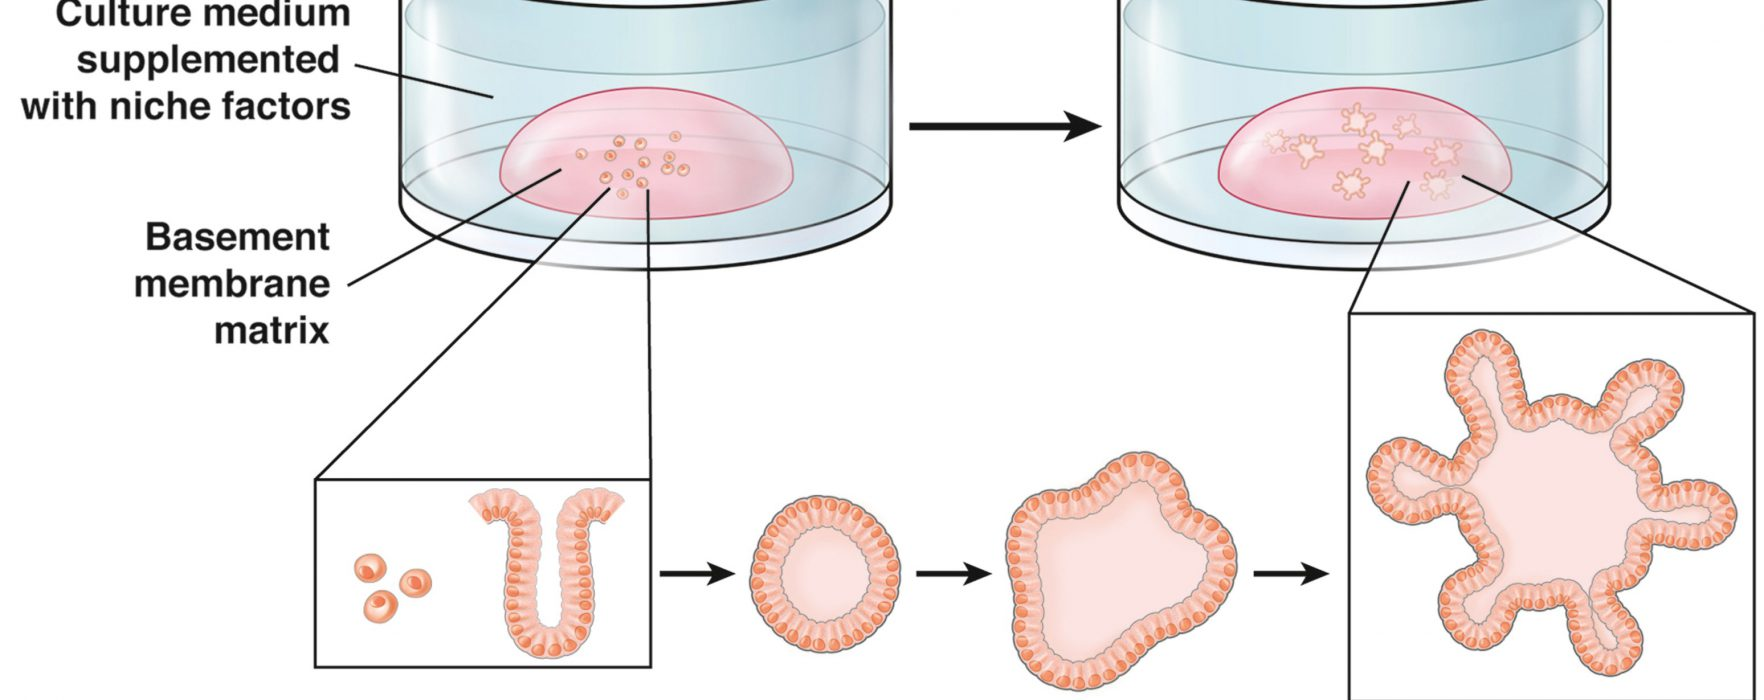 REVIEW: Combining CRISPR-Cas9 and Organoid Technologies to Study Gastrointestinal Diseases